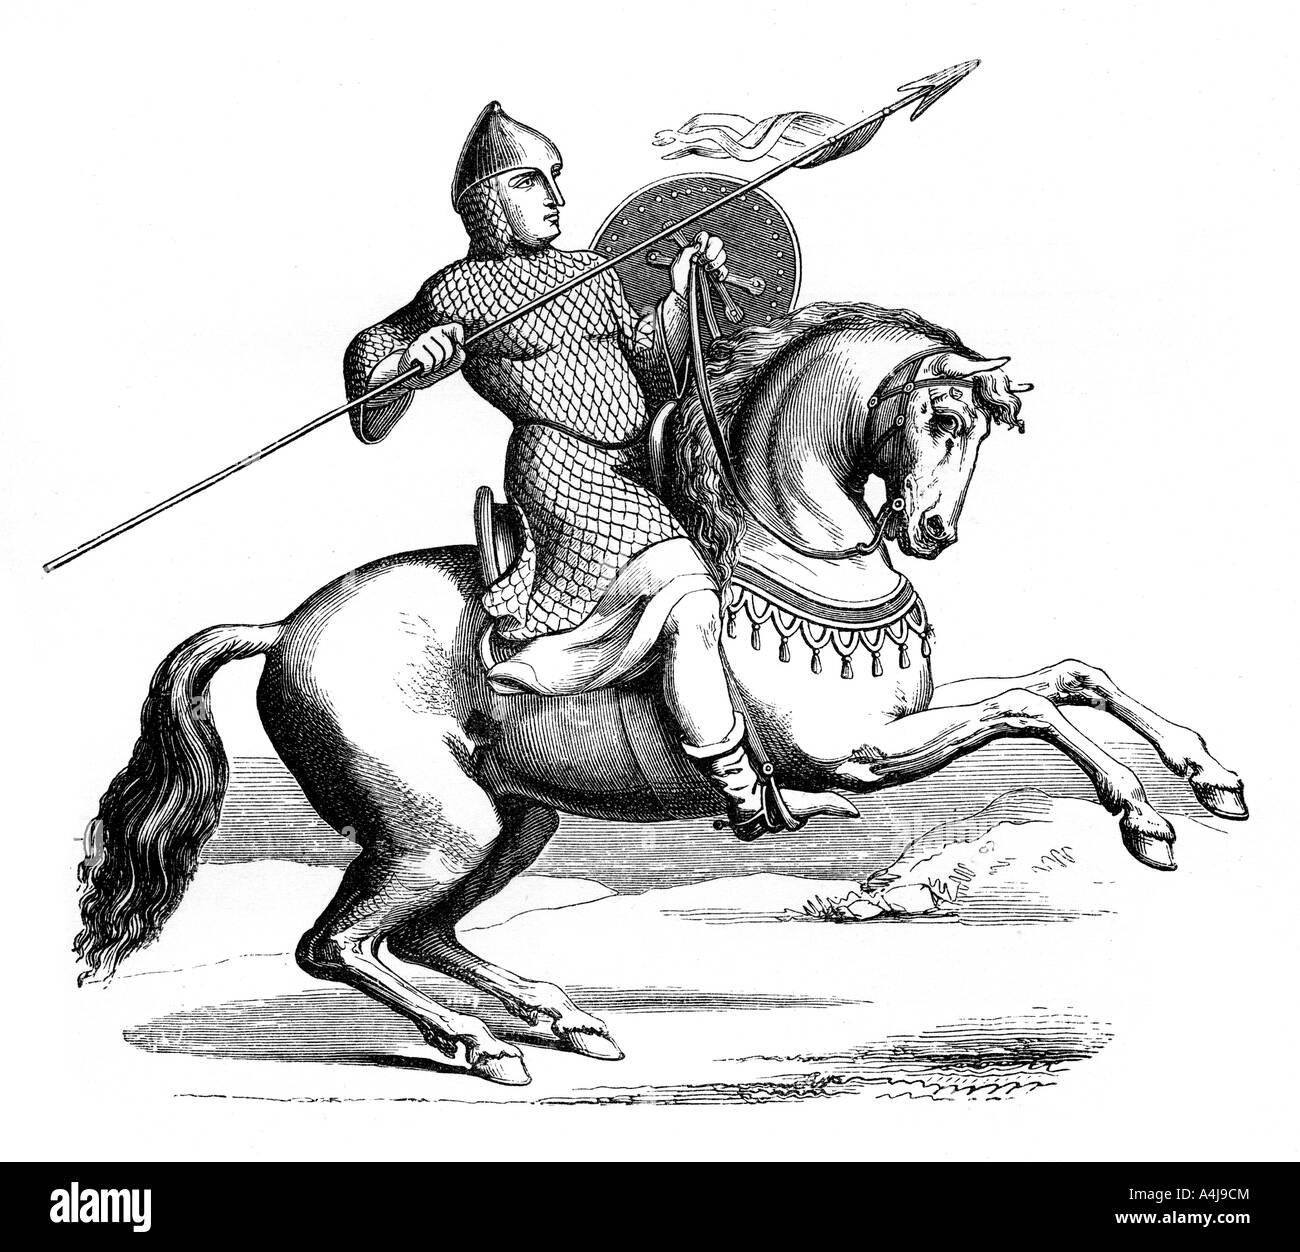 Medieval Knight Horse Black and White Stock Photos & Images - Alamy